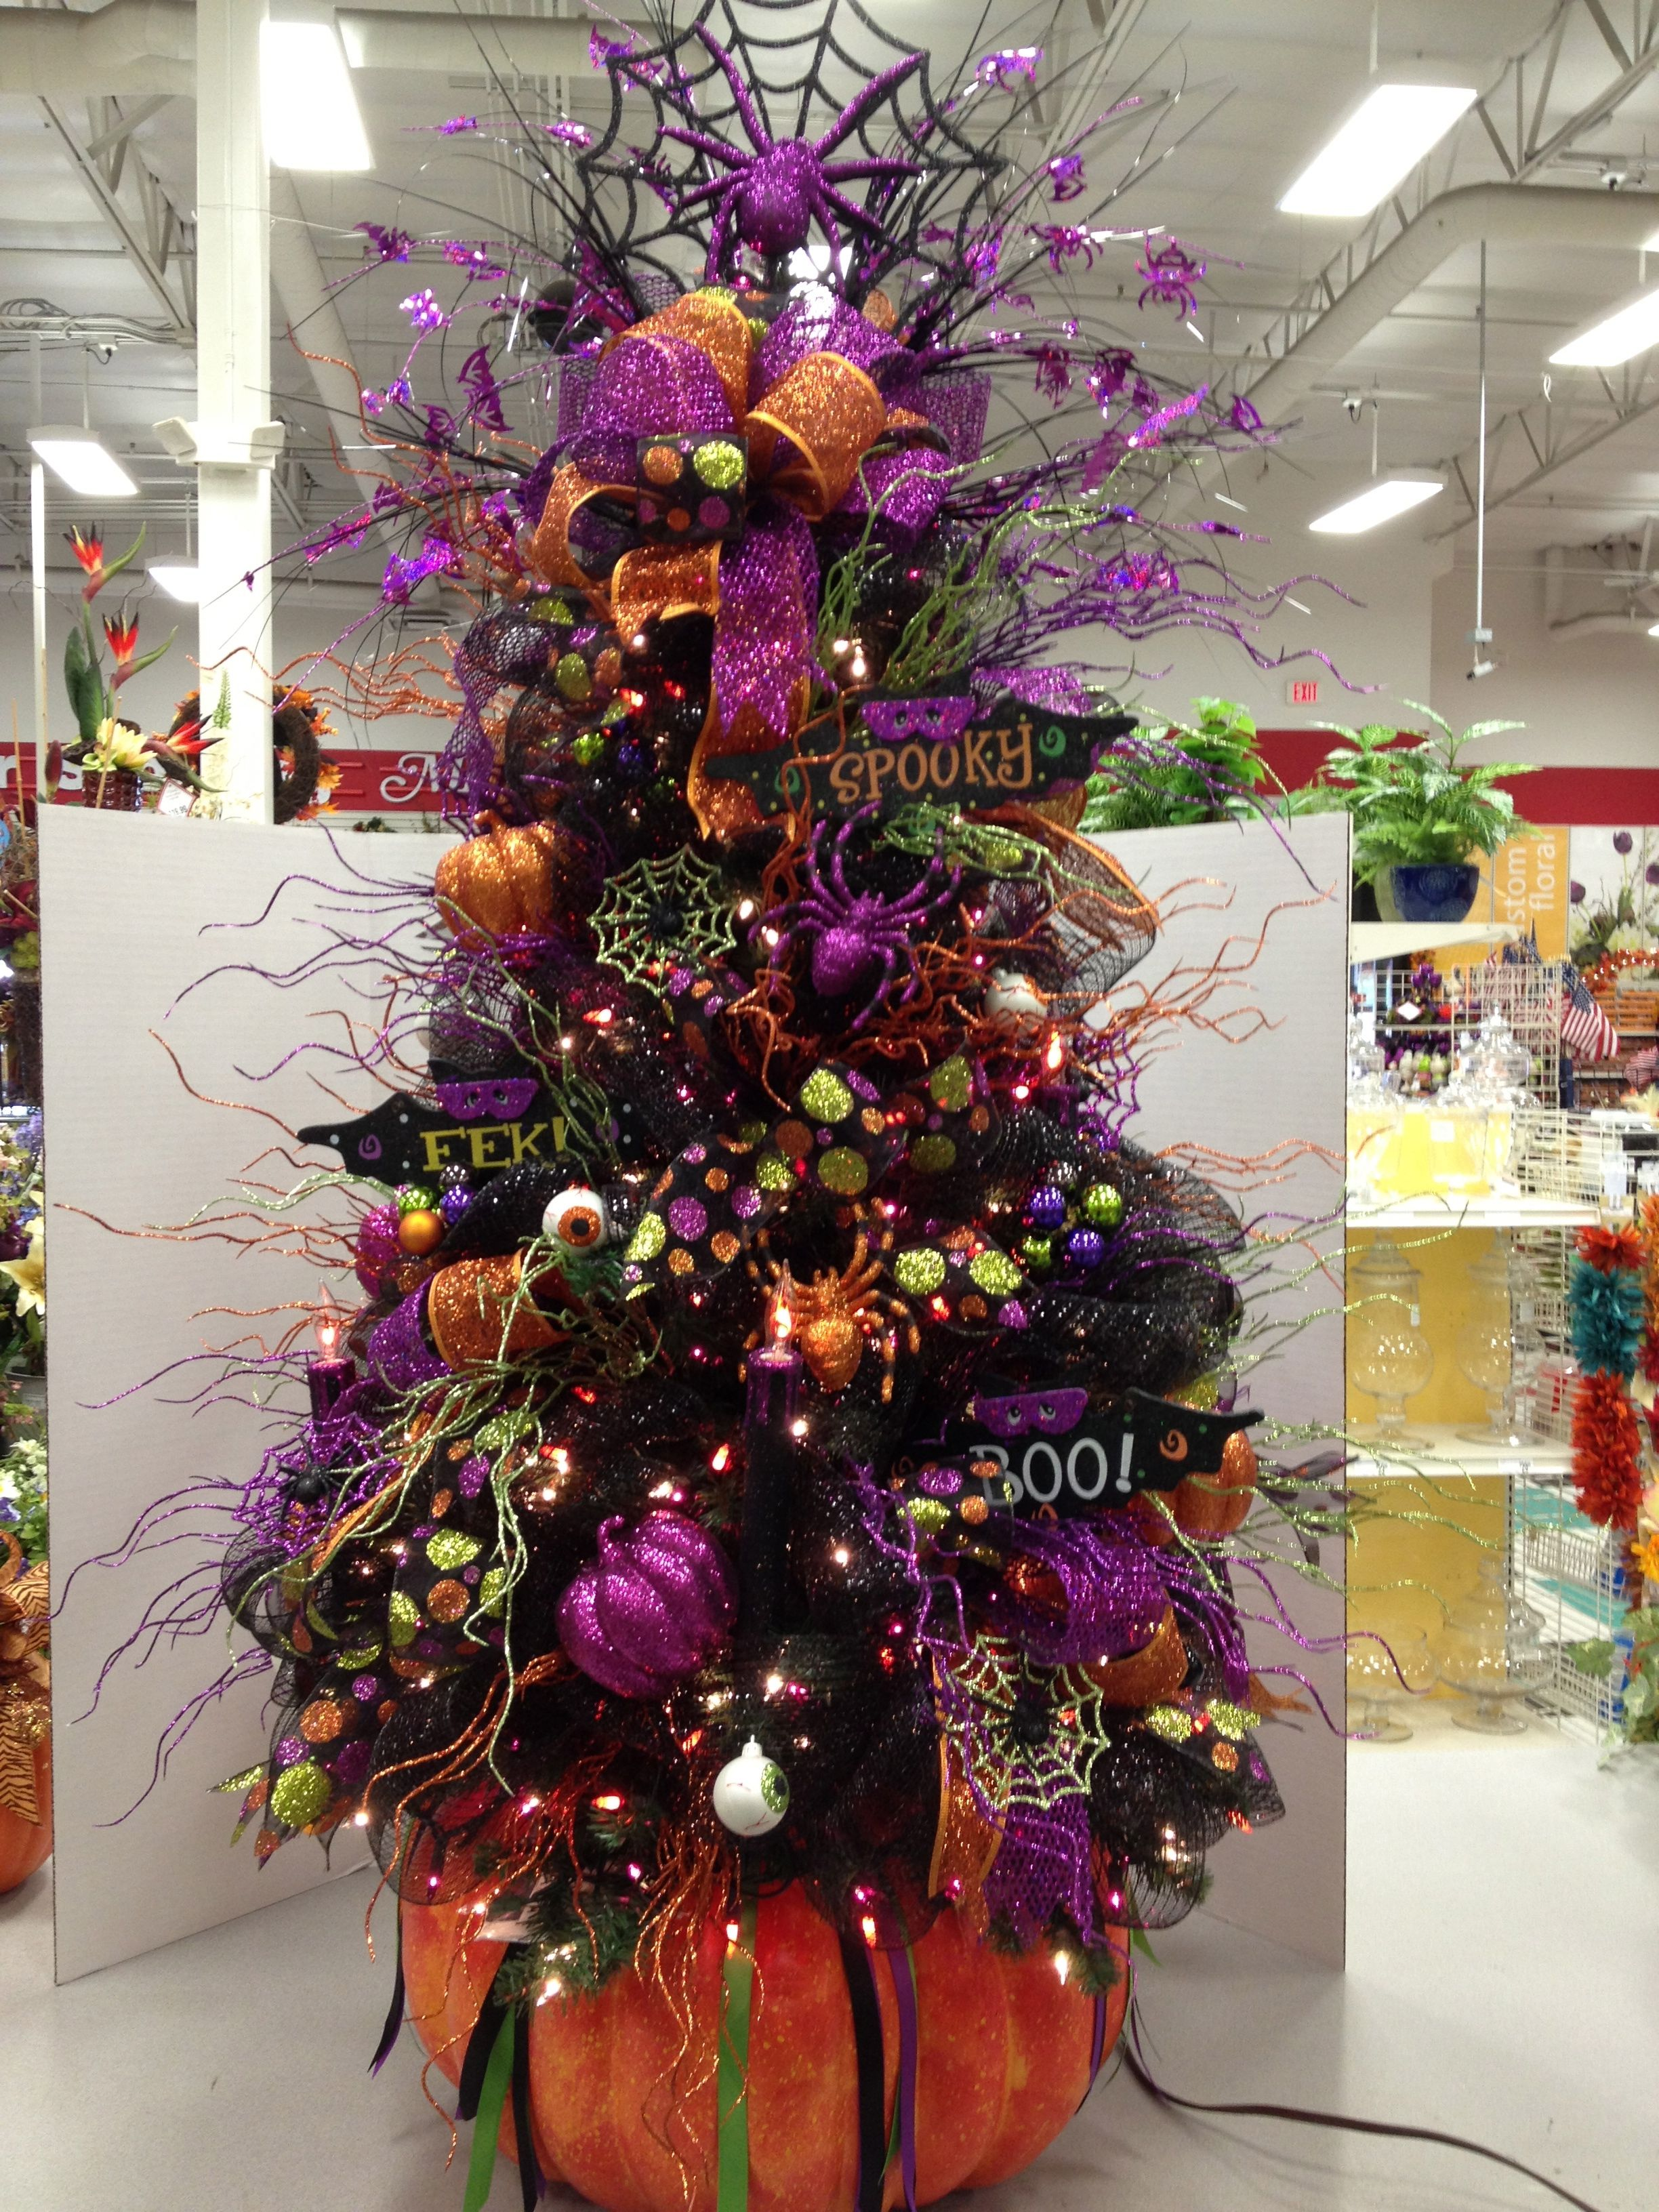 Pin By Theechristianandrew On My Floral Designs Michaels Halloween Tree Decorations Halloween Christmas Tree Halloween Diy